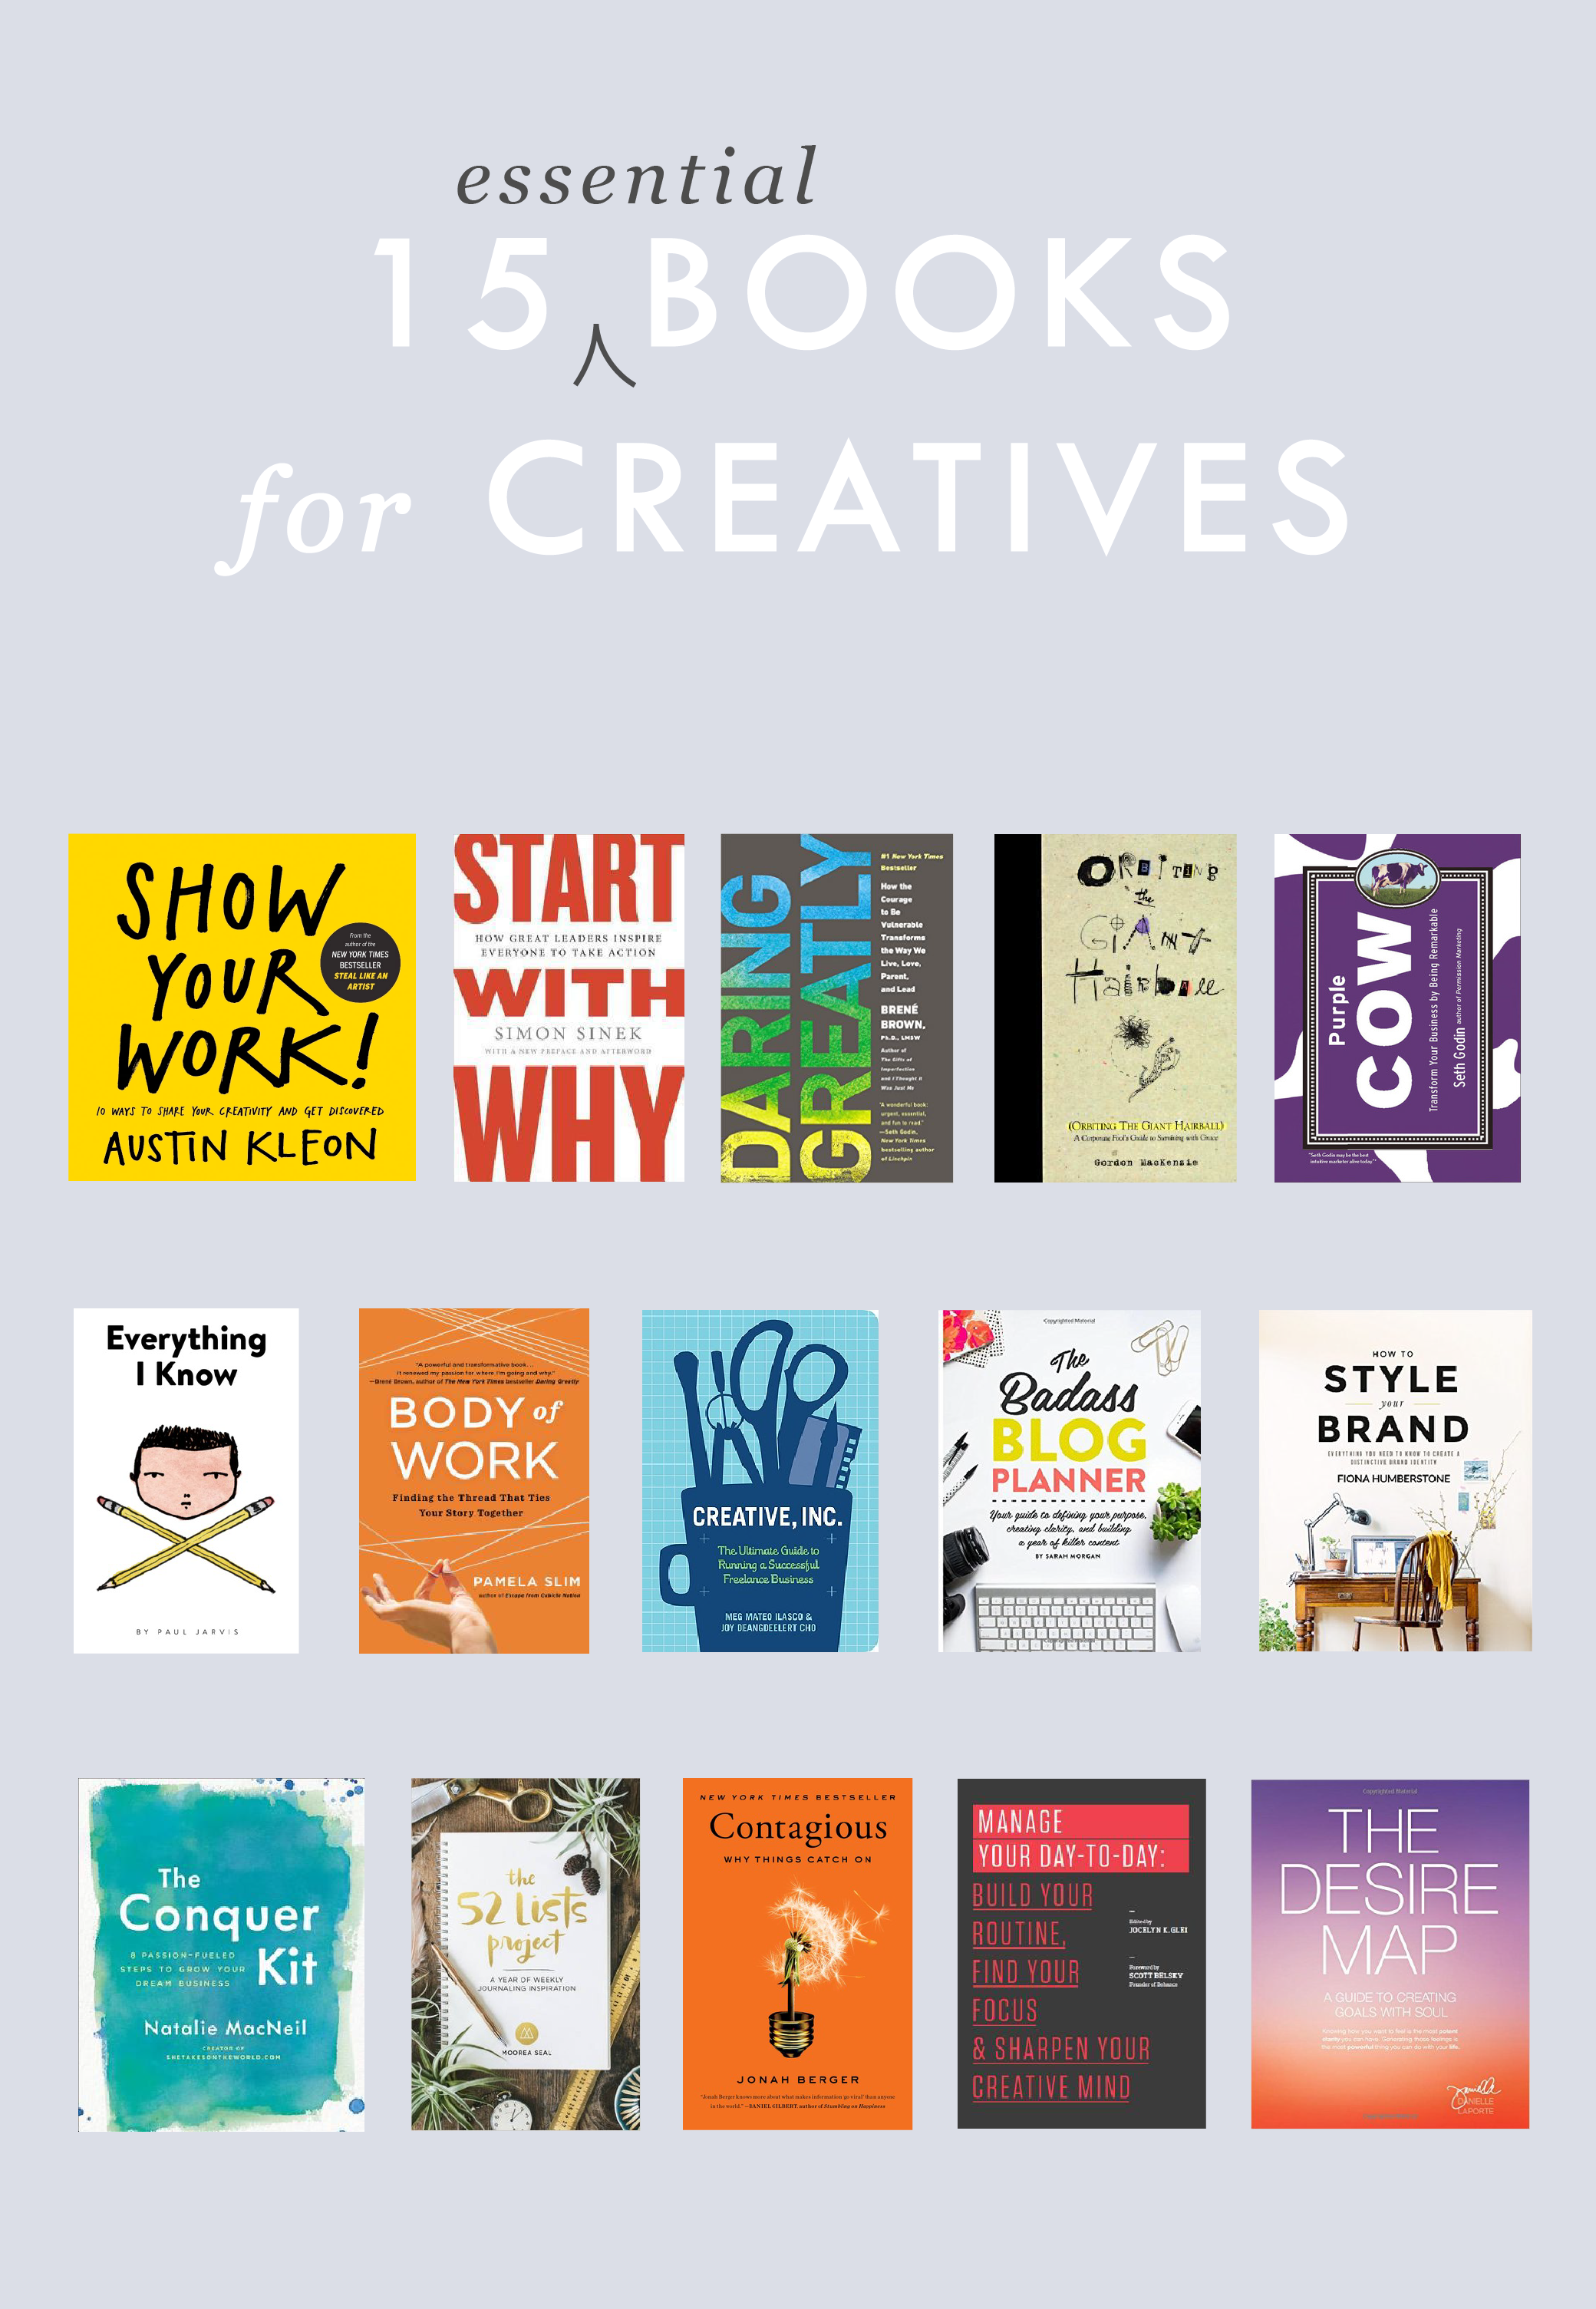 15-BOOKS-FOR-CREATIVES-07.png